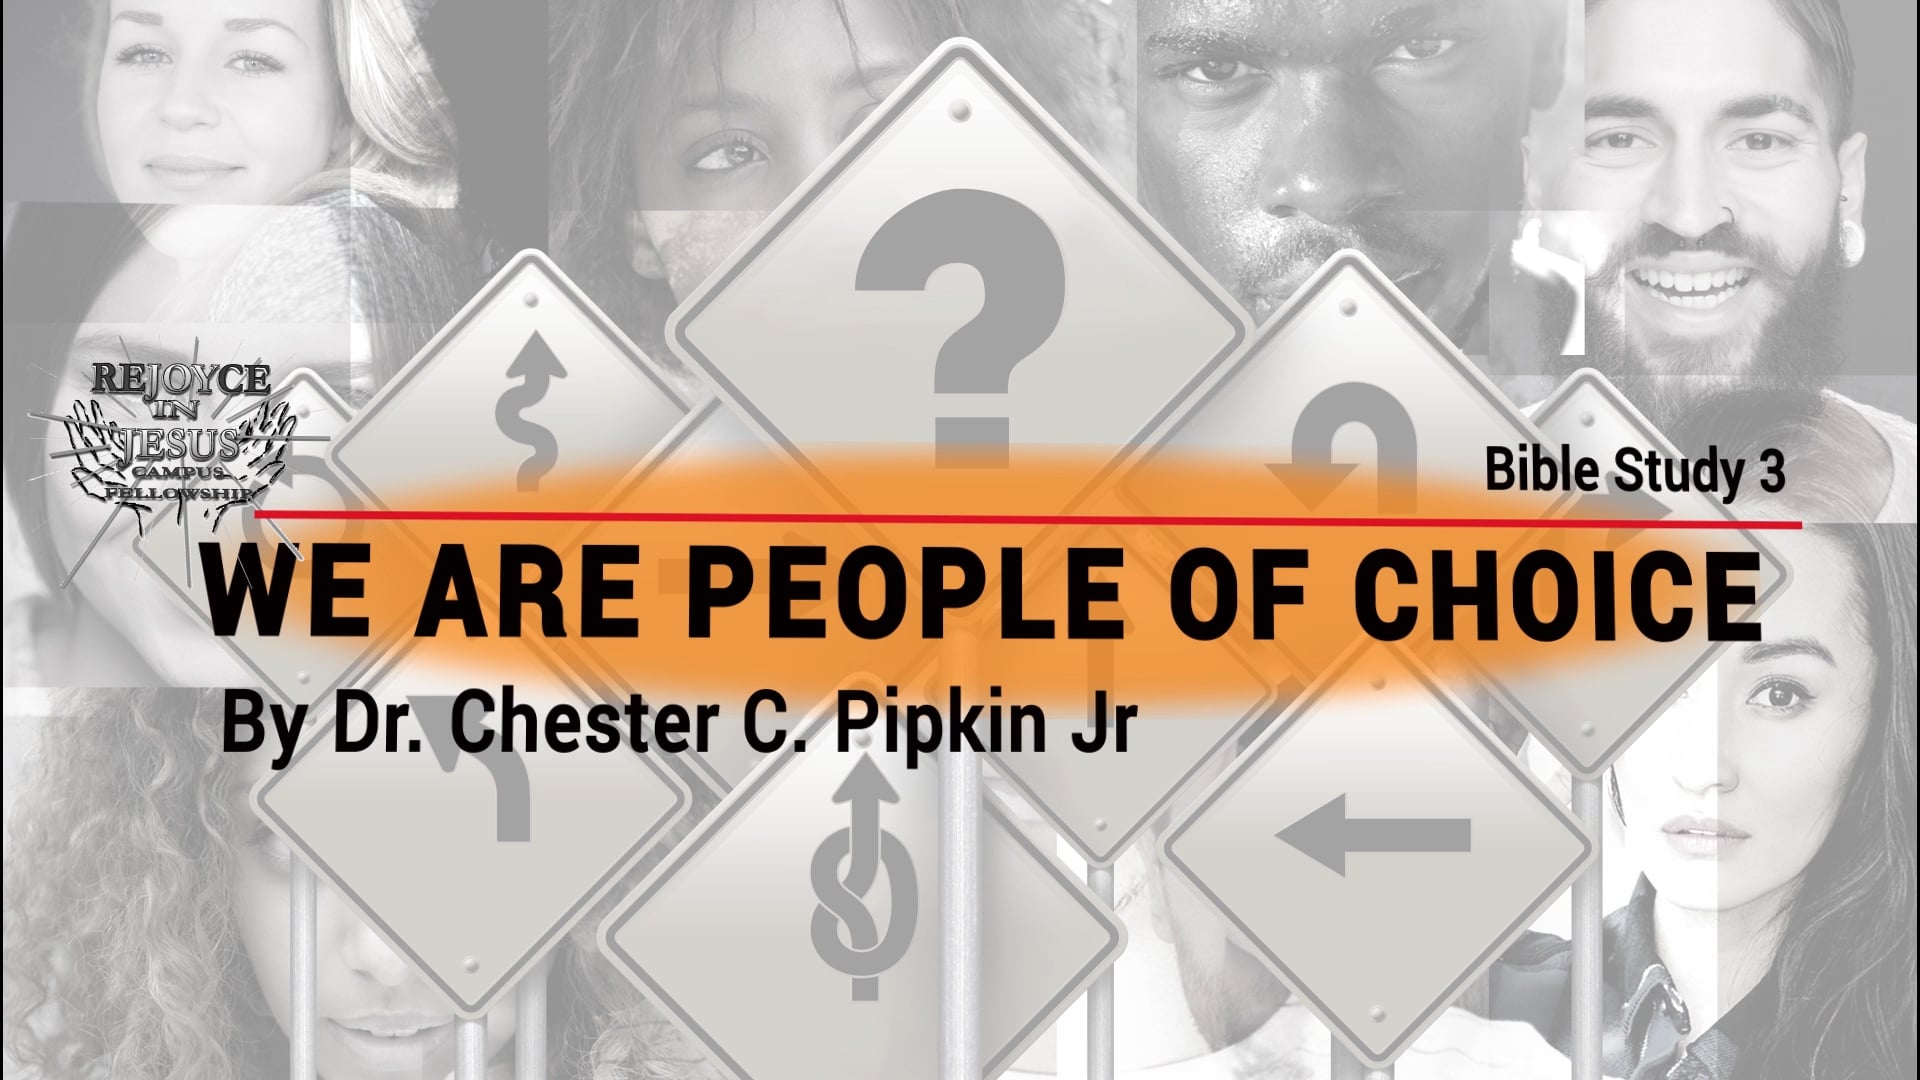 We Are People of Choice (Bible Study #3)